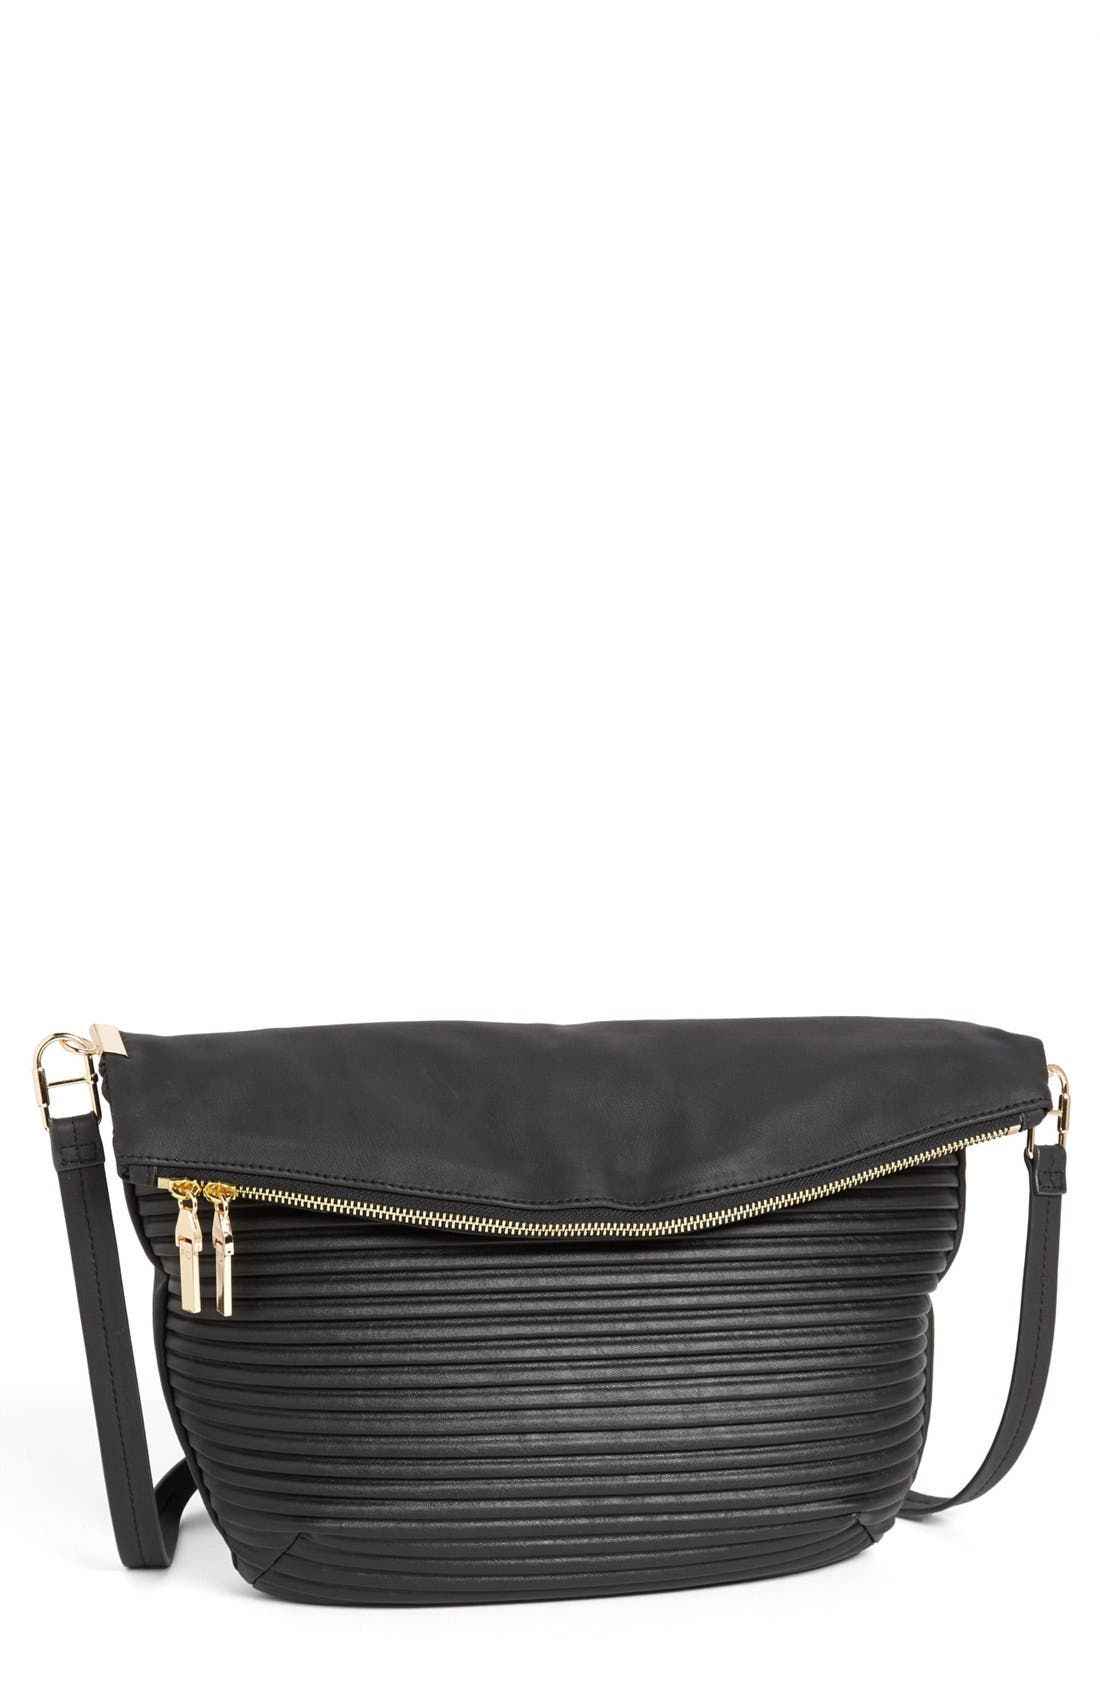 Main Image - French Connection Faux Leather Shoulder Bag